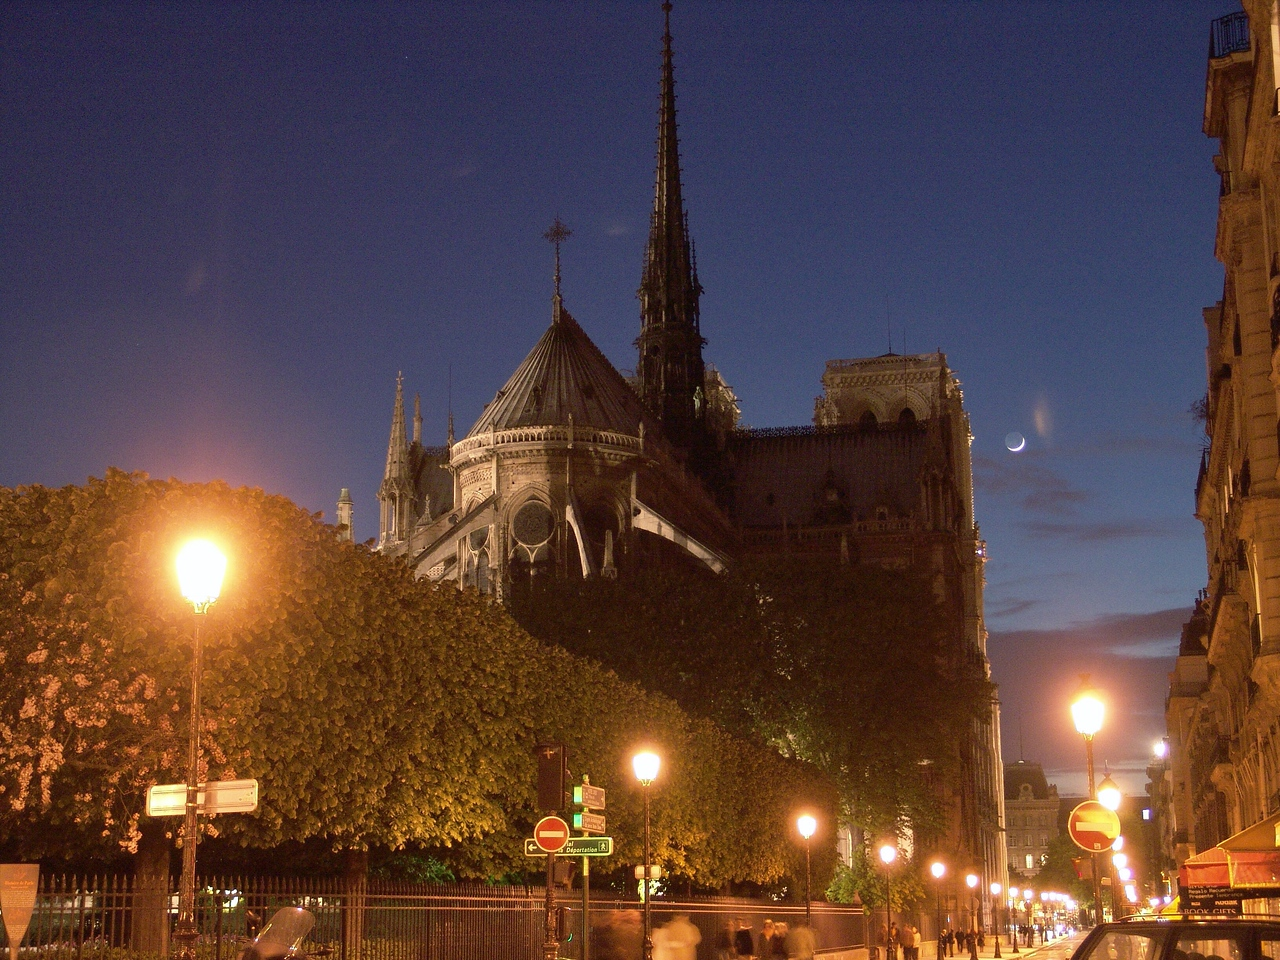 ND25: Here along the back side and Northern edge of the cathedral runs a boulevard...this photo captures a moonlit evening with Parisians out and about... going home from work or out to dinner.